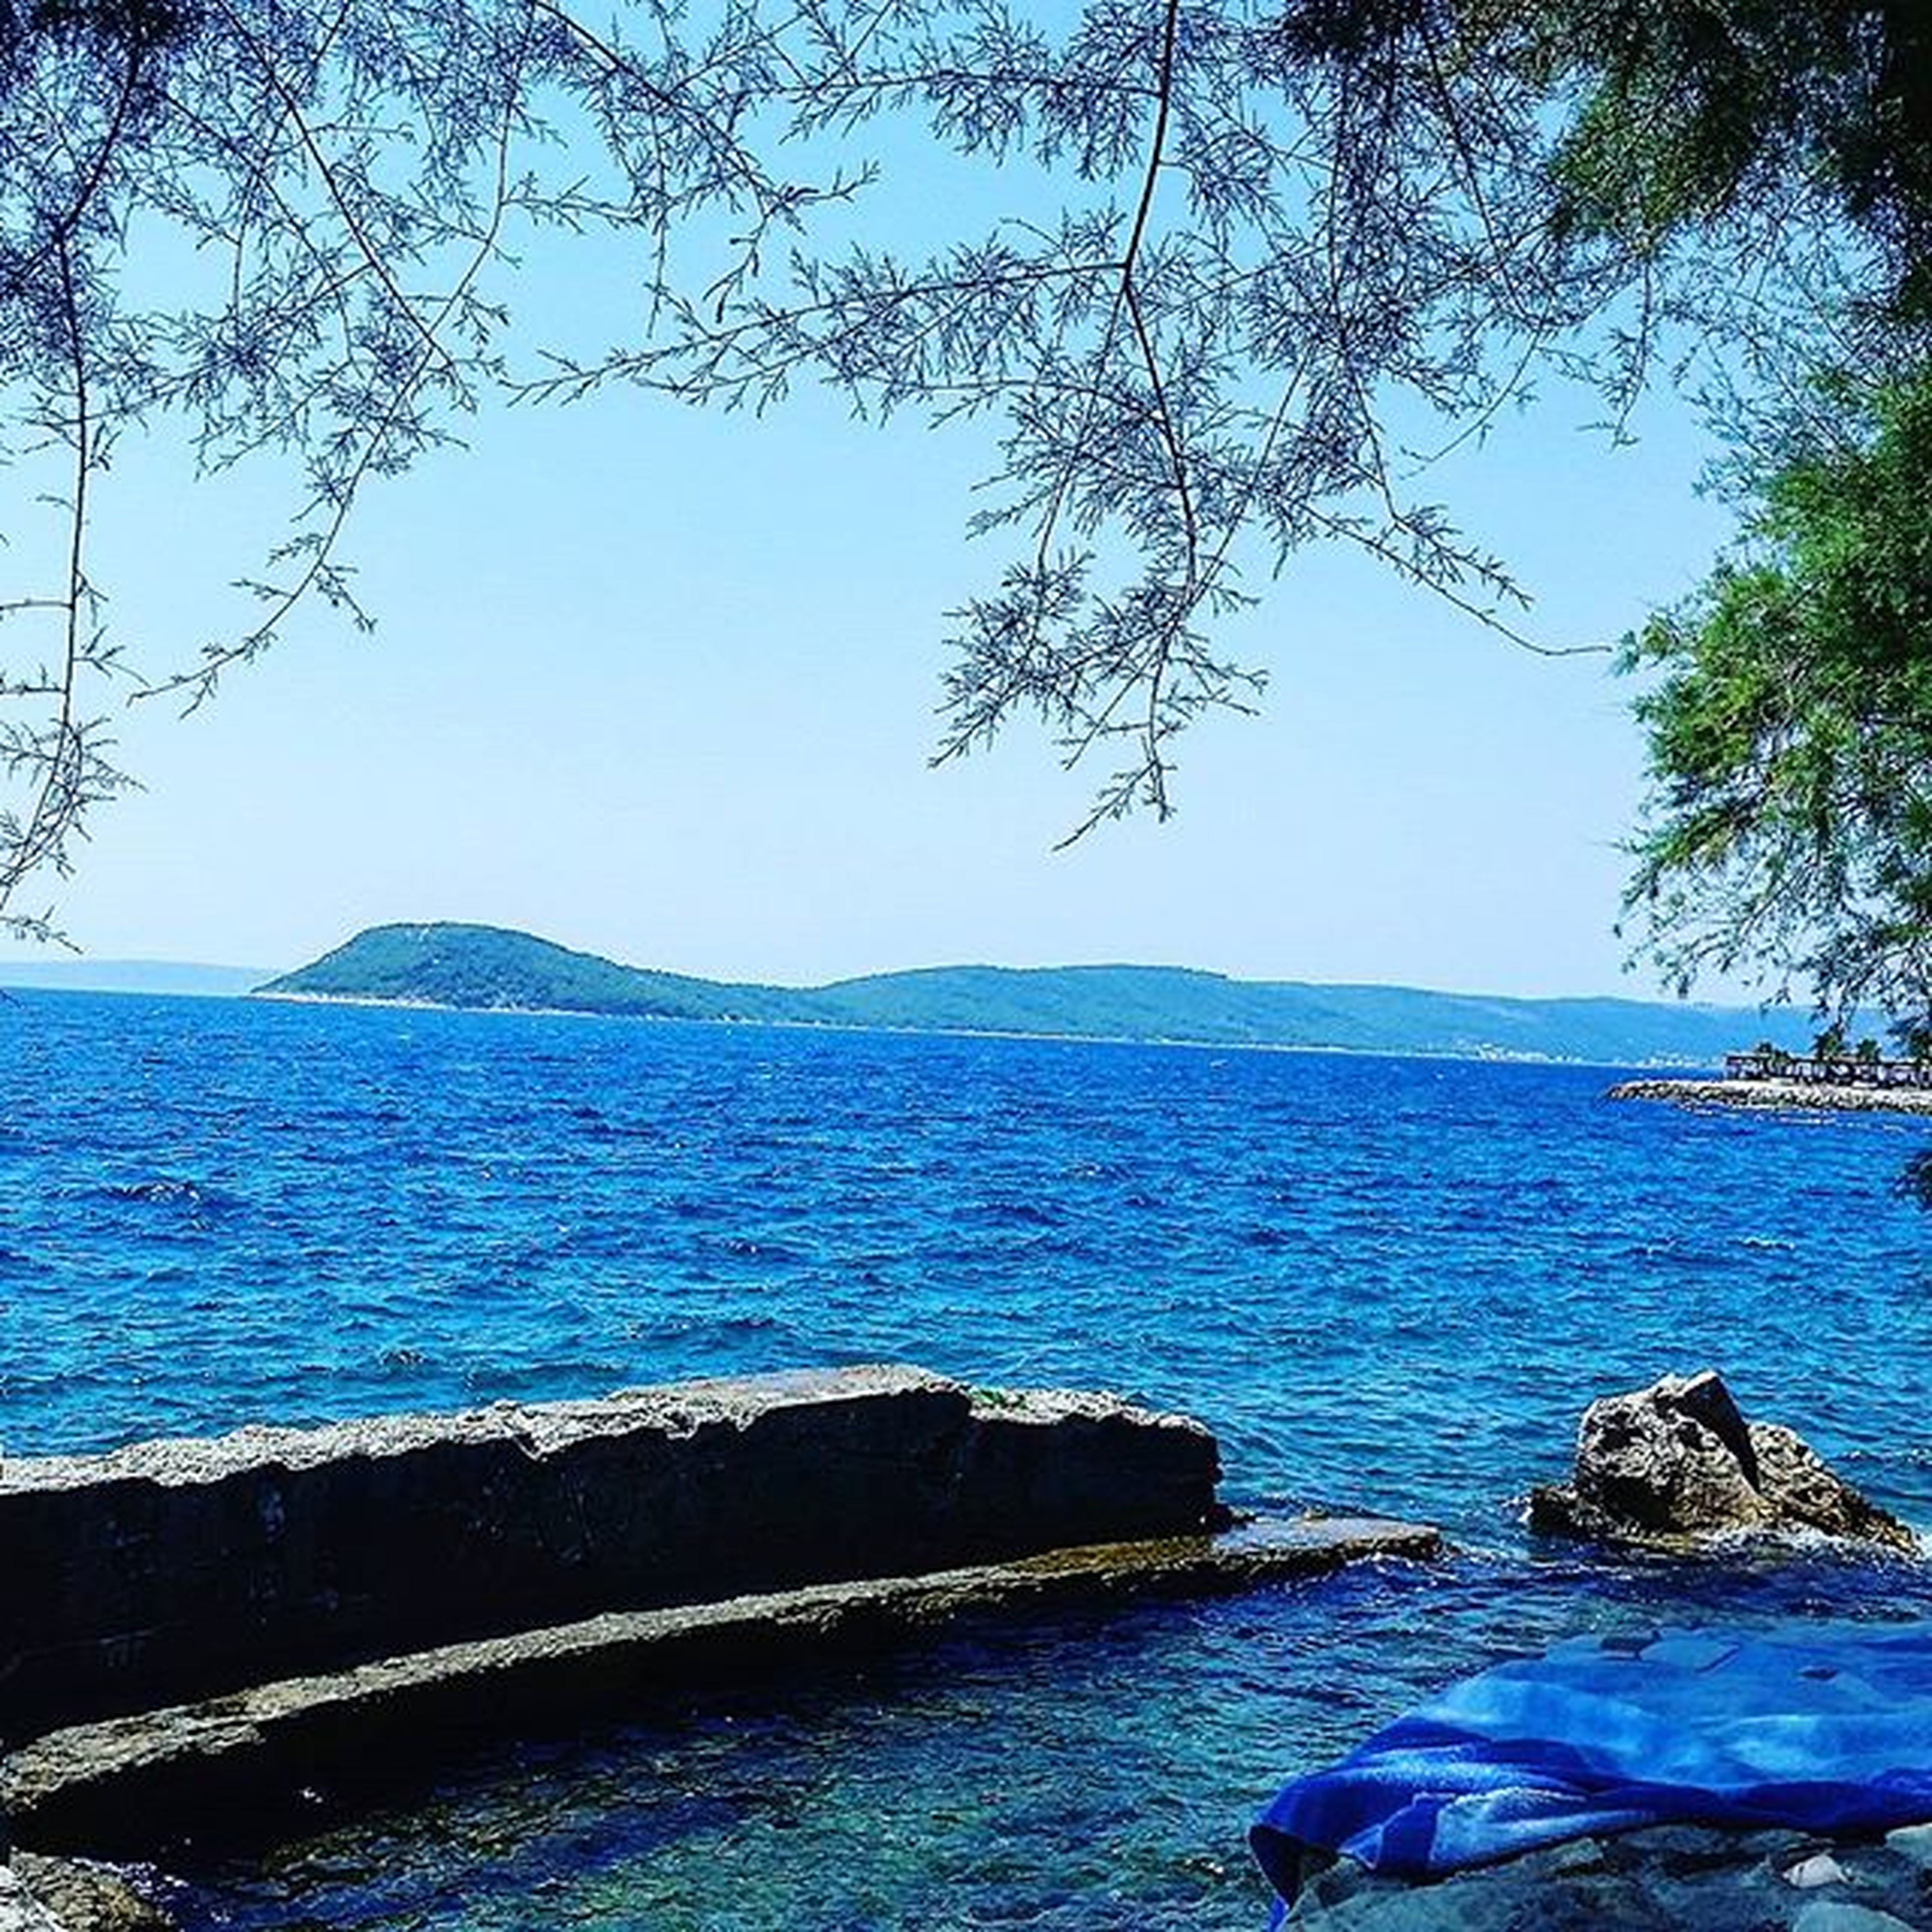 water, sea, blue, tranquil scene, scenics, beauty in nature, tranquility, clear sky, nature, tree, rippled, rock - object, sky, idyllic, day, horizon over water, mountain, outdoors, no people, branch